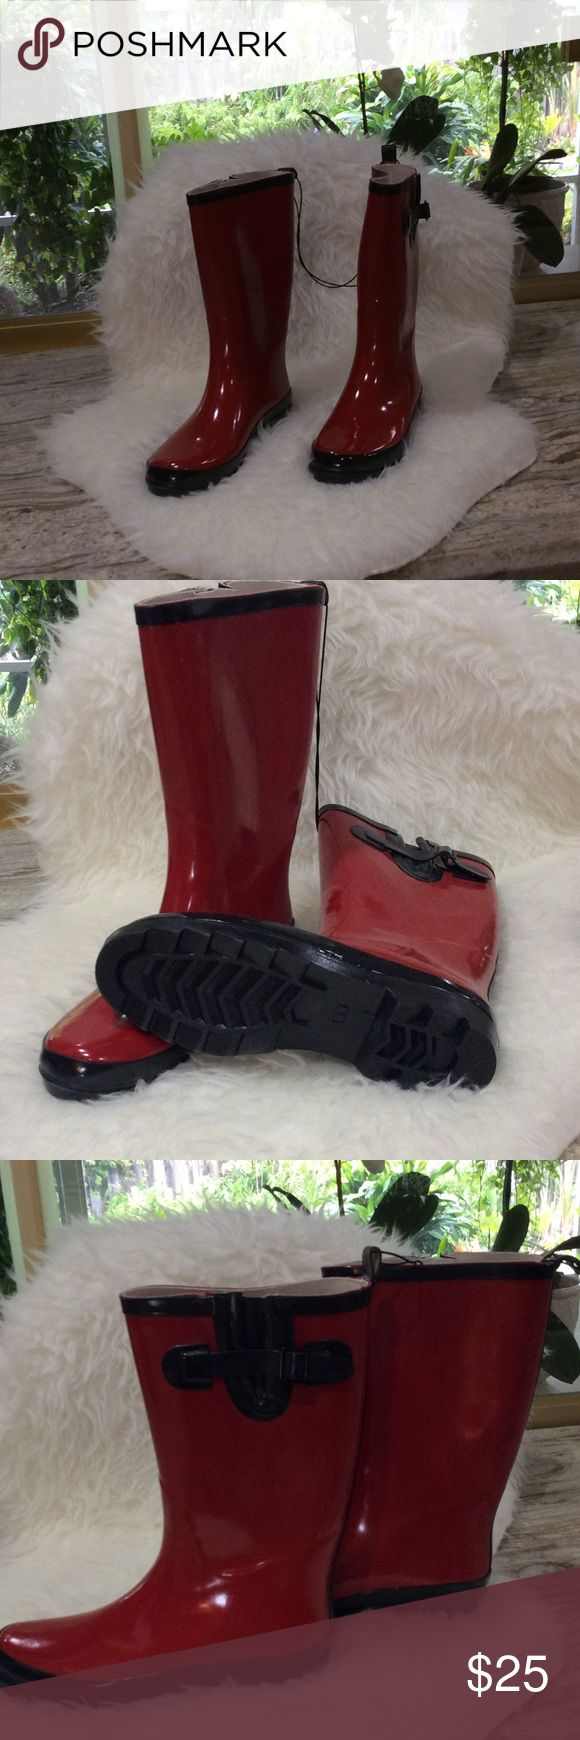 Ladies Rain Boots. NWOT. Red w  beautiful black trim, see black buckle trim on outer-sides of each boot. Water resistant w Flexible outsole.  Botas de Lluvia para mujer. Never worn. Serra Shoes Winter & Rain Boots